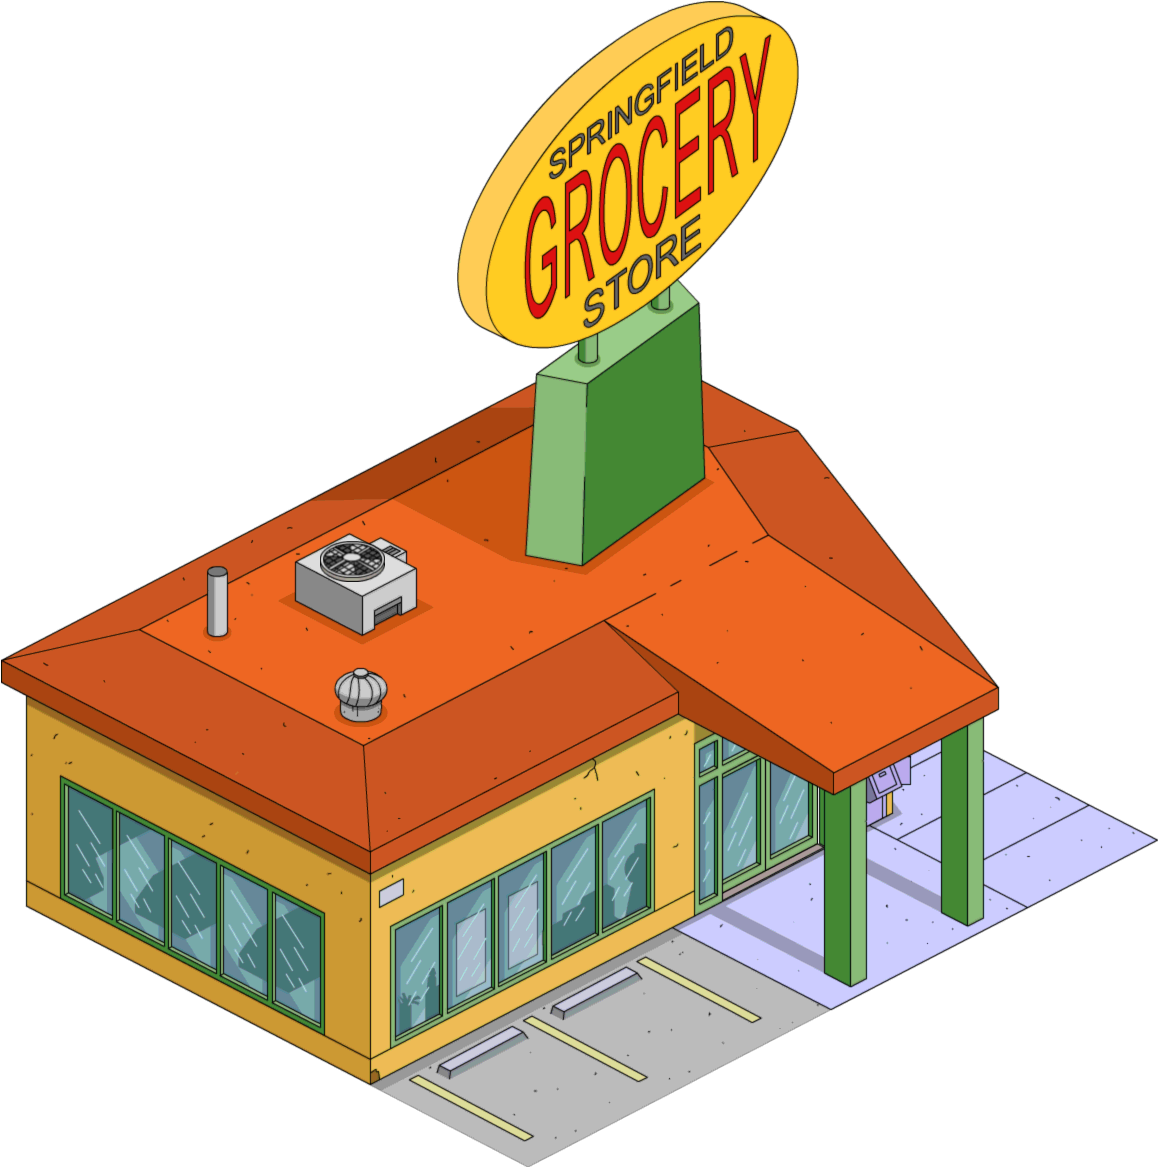 collection of transparent. Restaurants clipart grocery store building